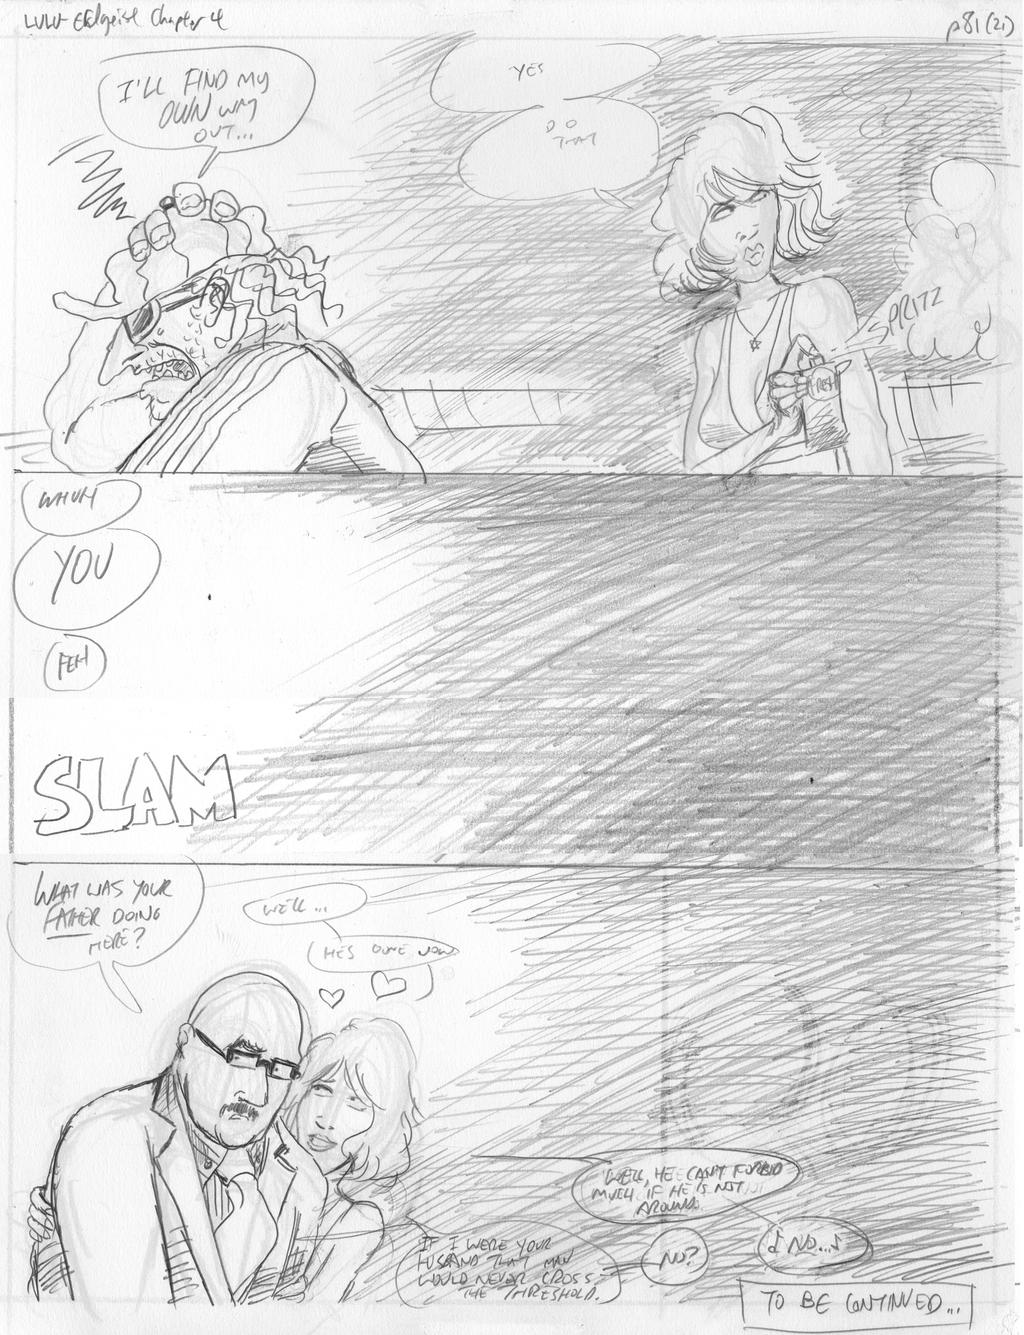 LULU Book 2 - Chapter 4 p. 82 Pencil by JLRoberson